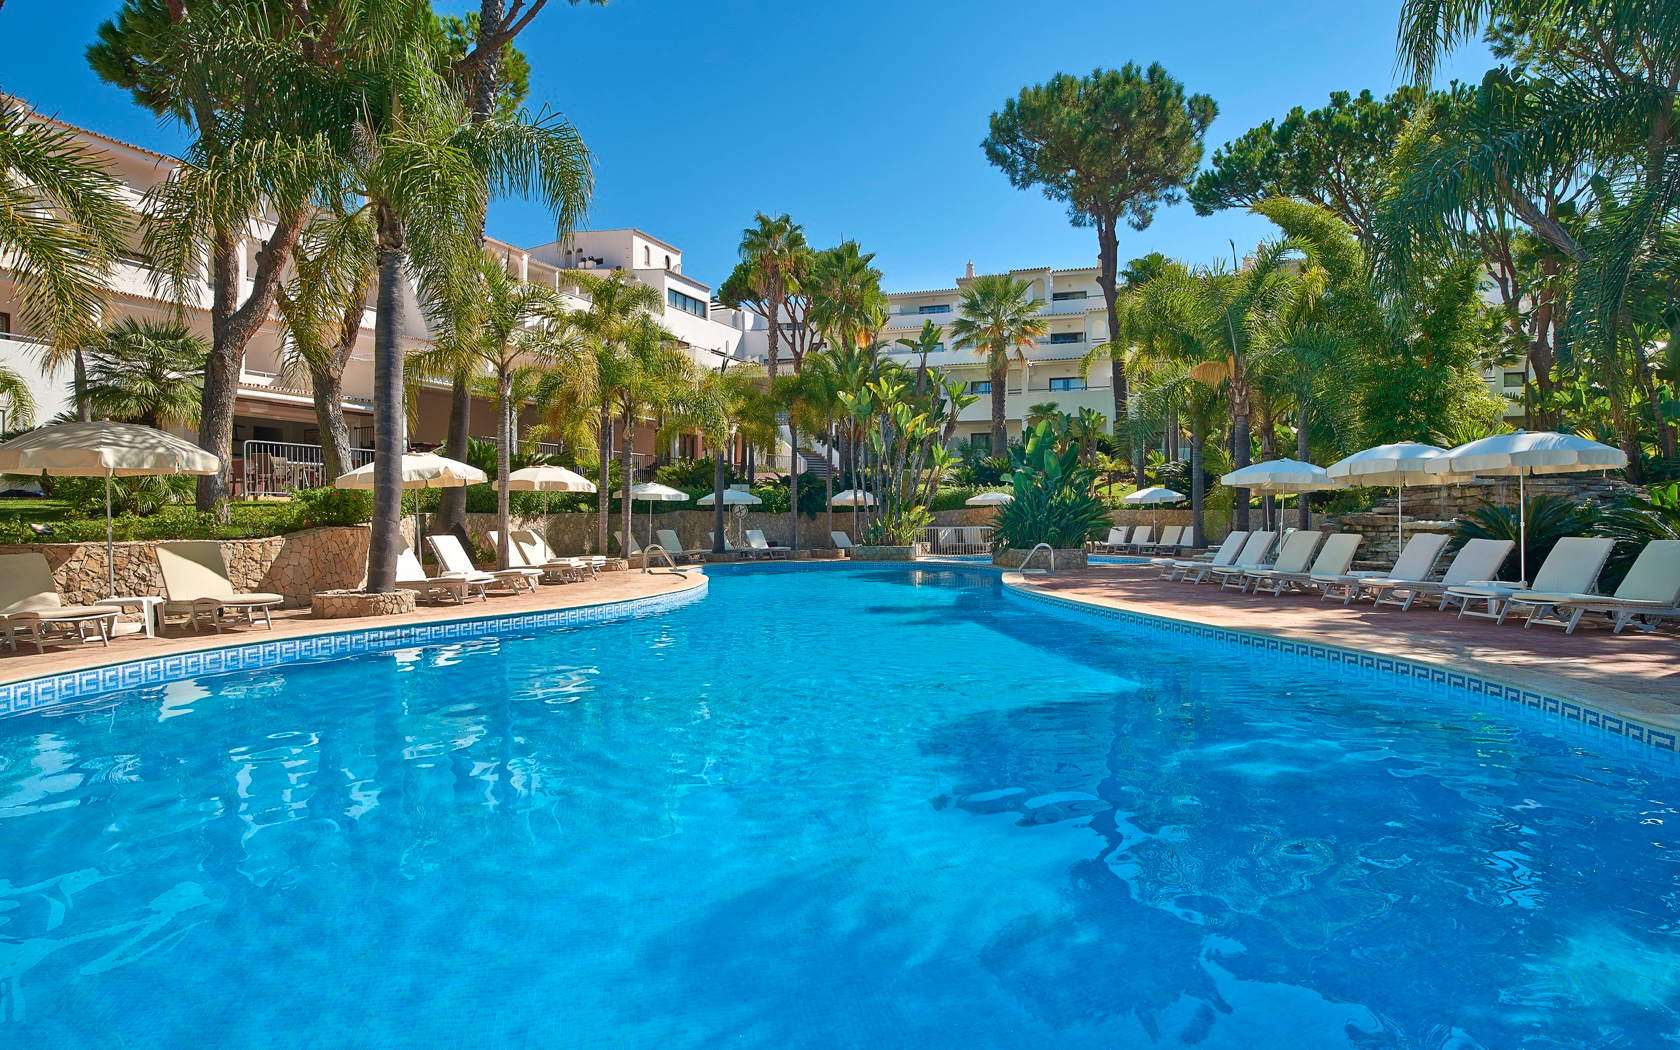 luxury-hotels-in-portugal-riaparkgardenhotel